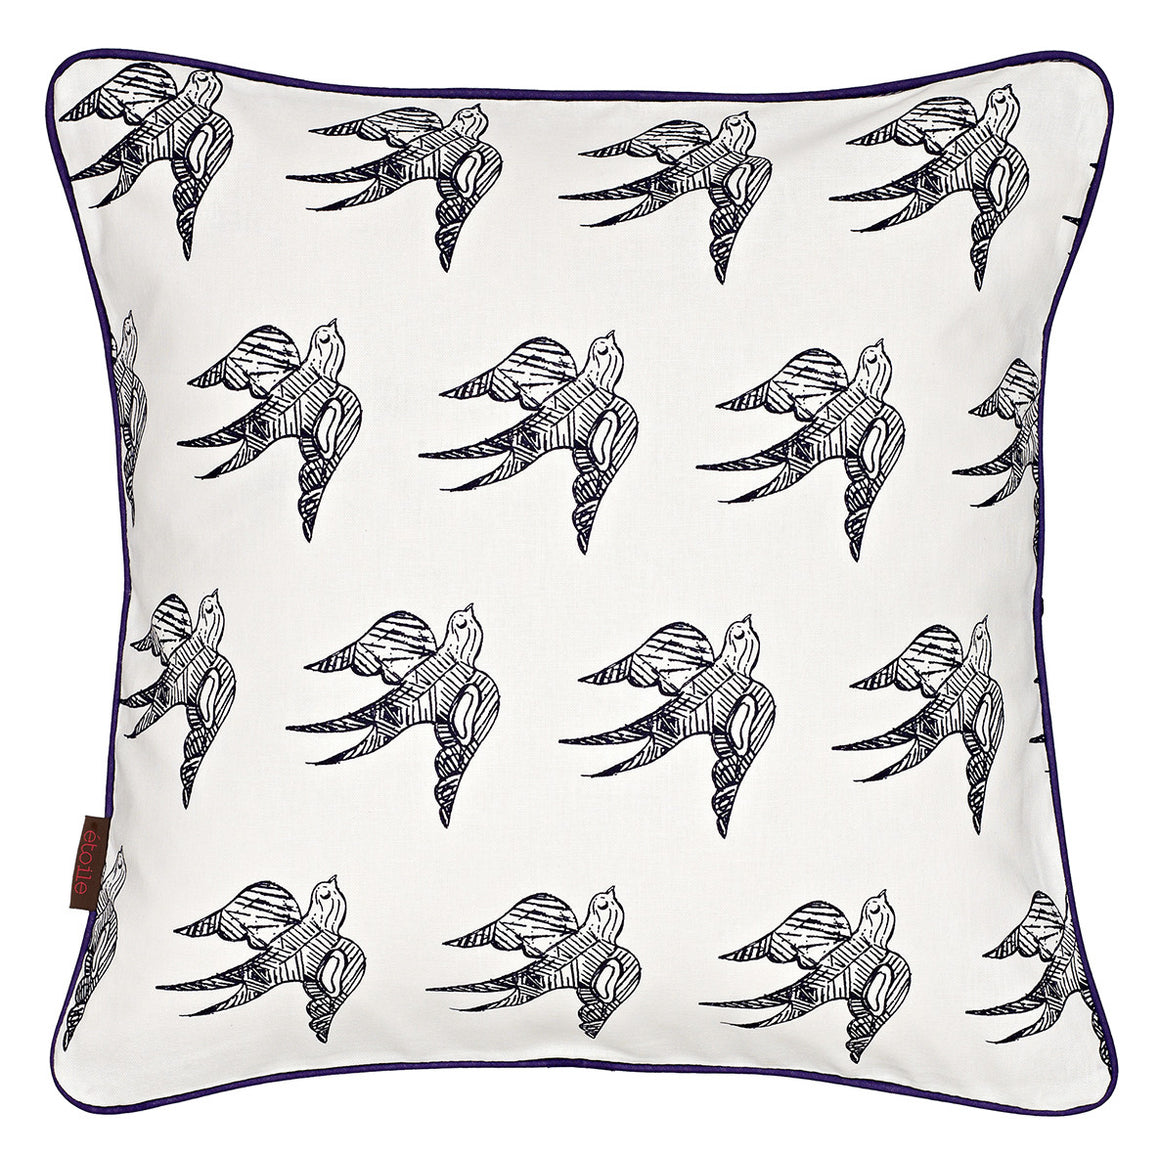 Katia Swallow Bird Pattern Linen Cotton Cushion in Dark Aubergine Purple 45x45cm